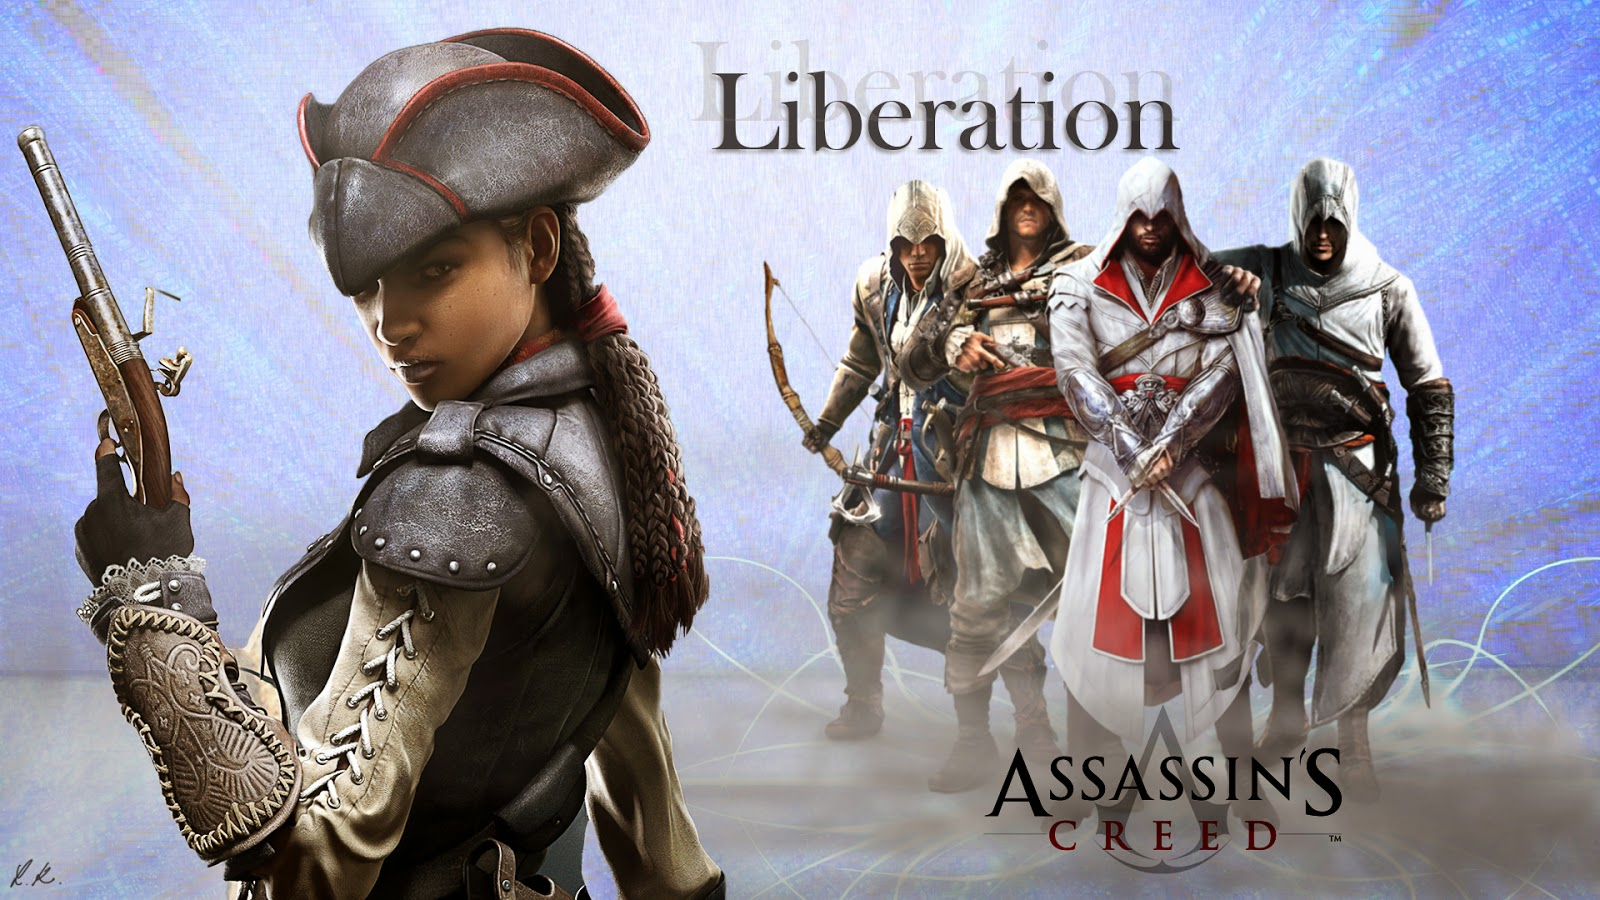 Aveline de Geanpiere Assassins Creed